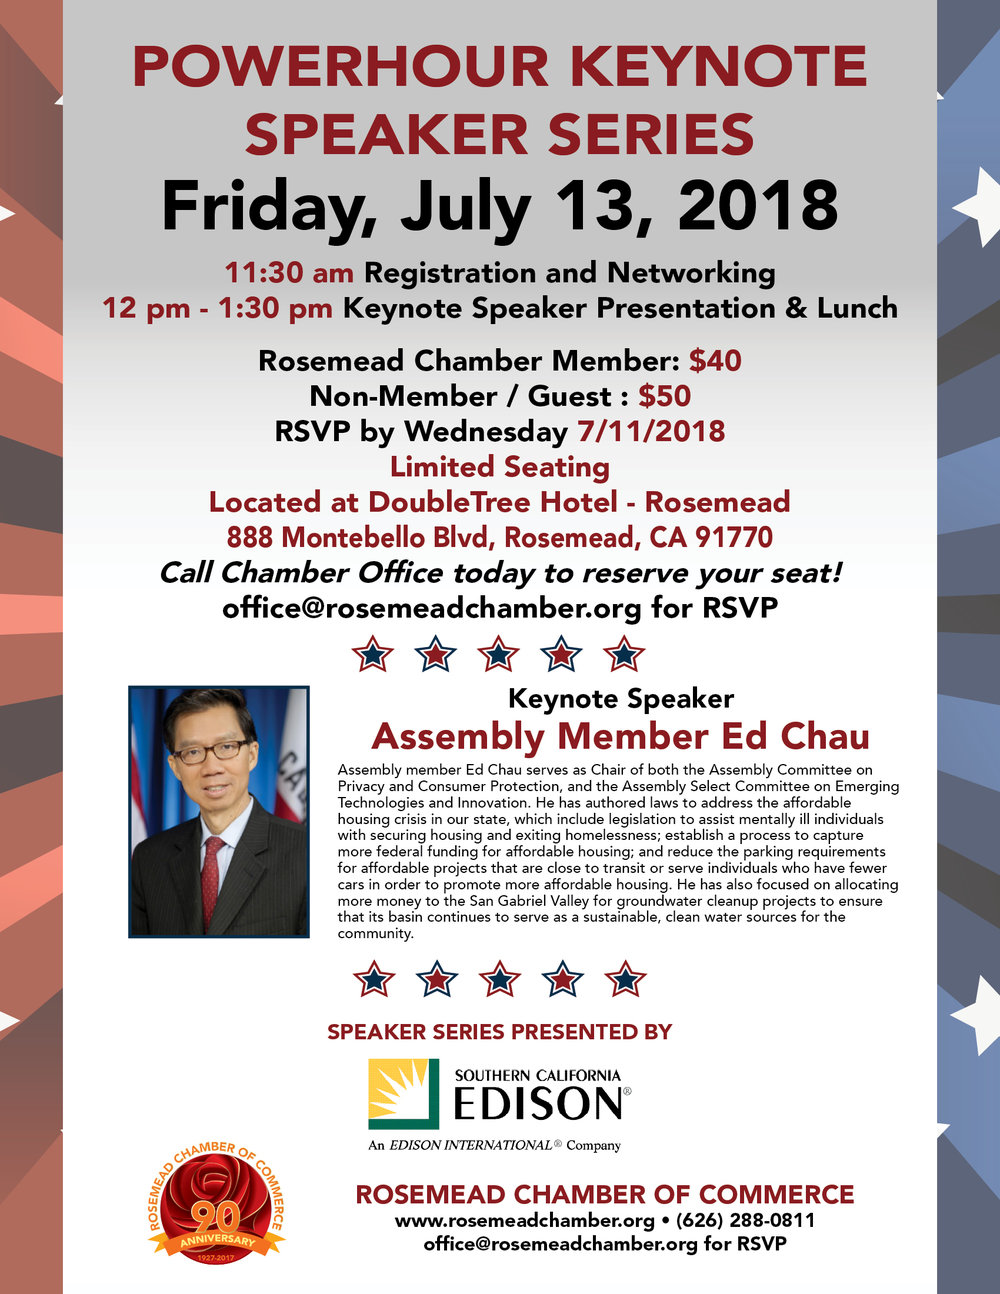 Powerhouse keynote speaker series - Friday, July 13, 2018